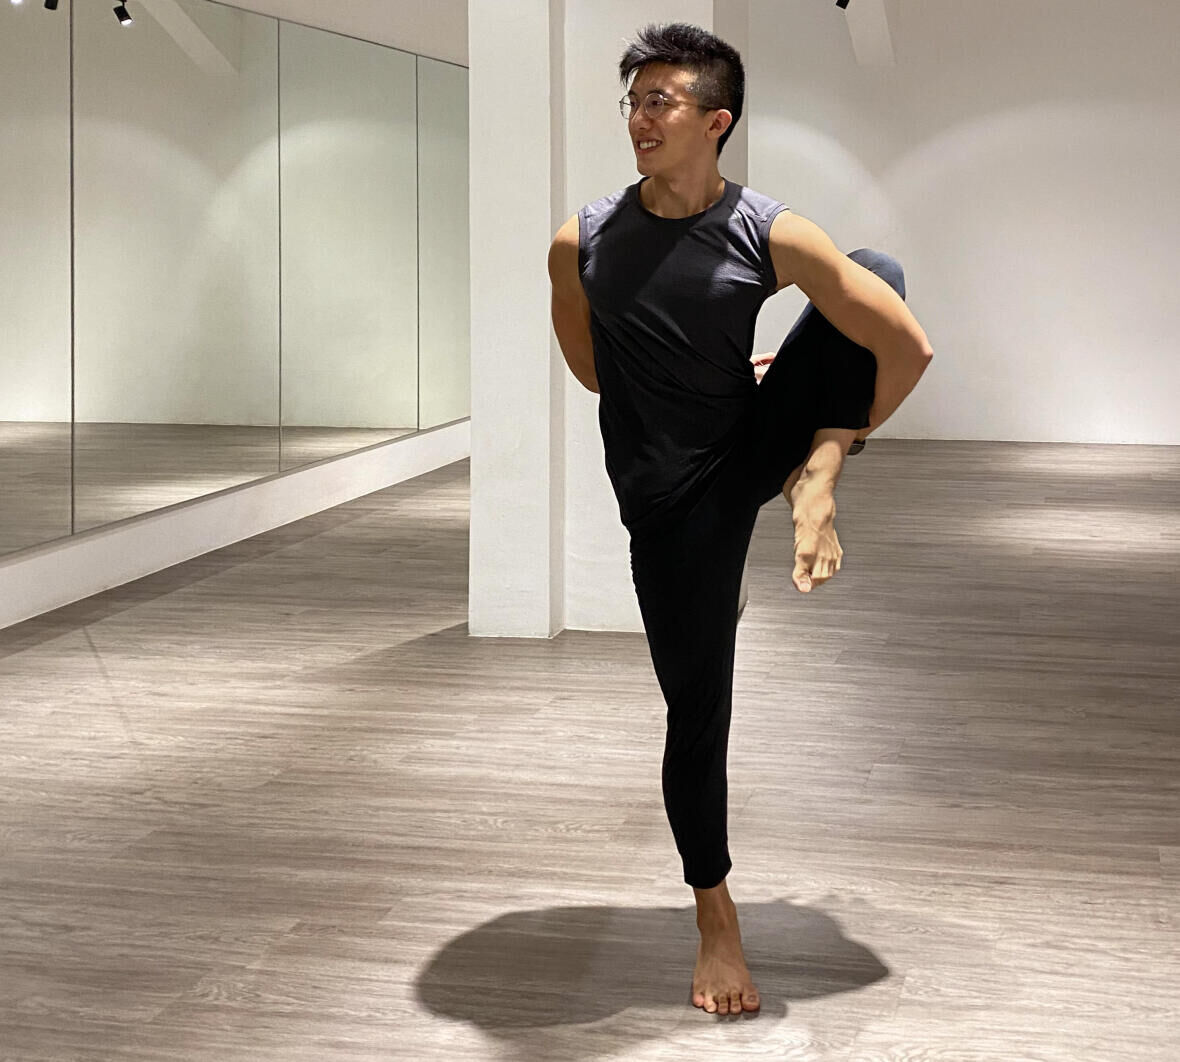 Playing Music During Your Yoga Practice: Thoughts by a Yoga Instructor